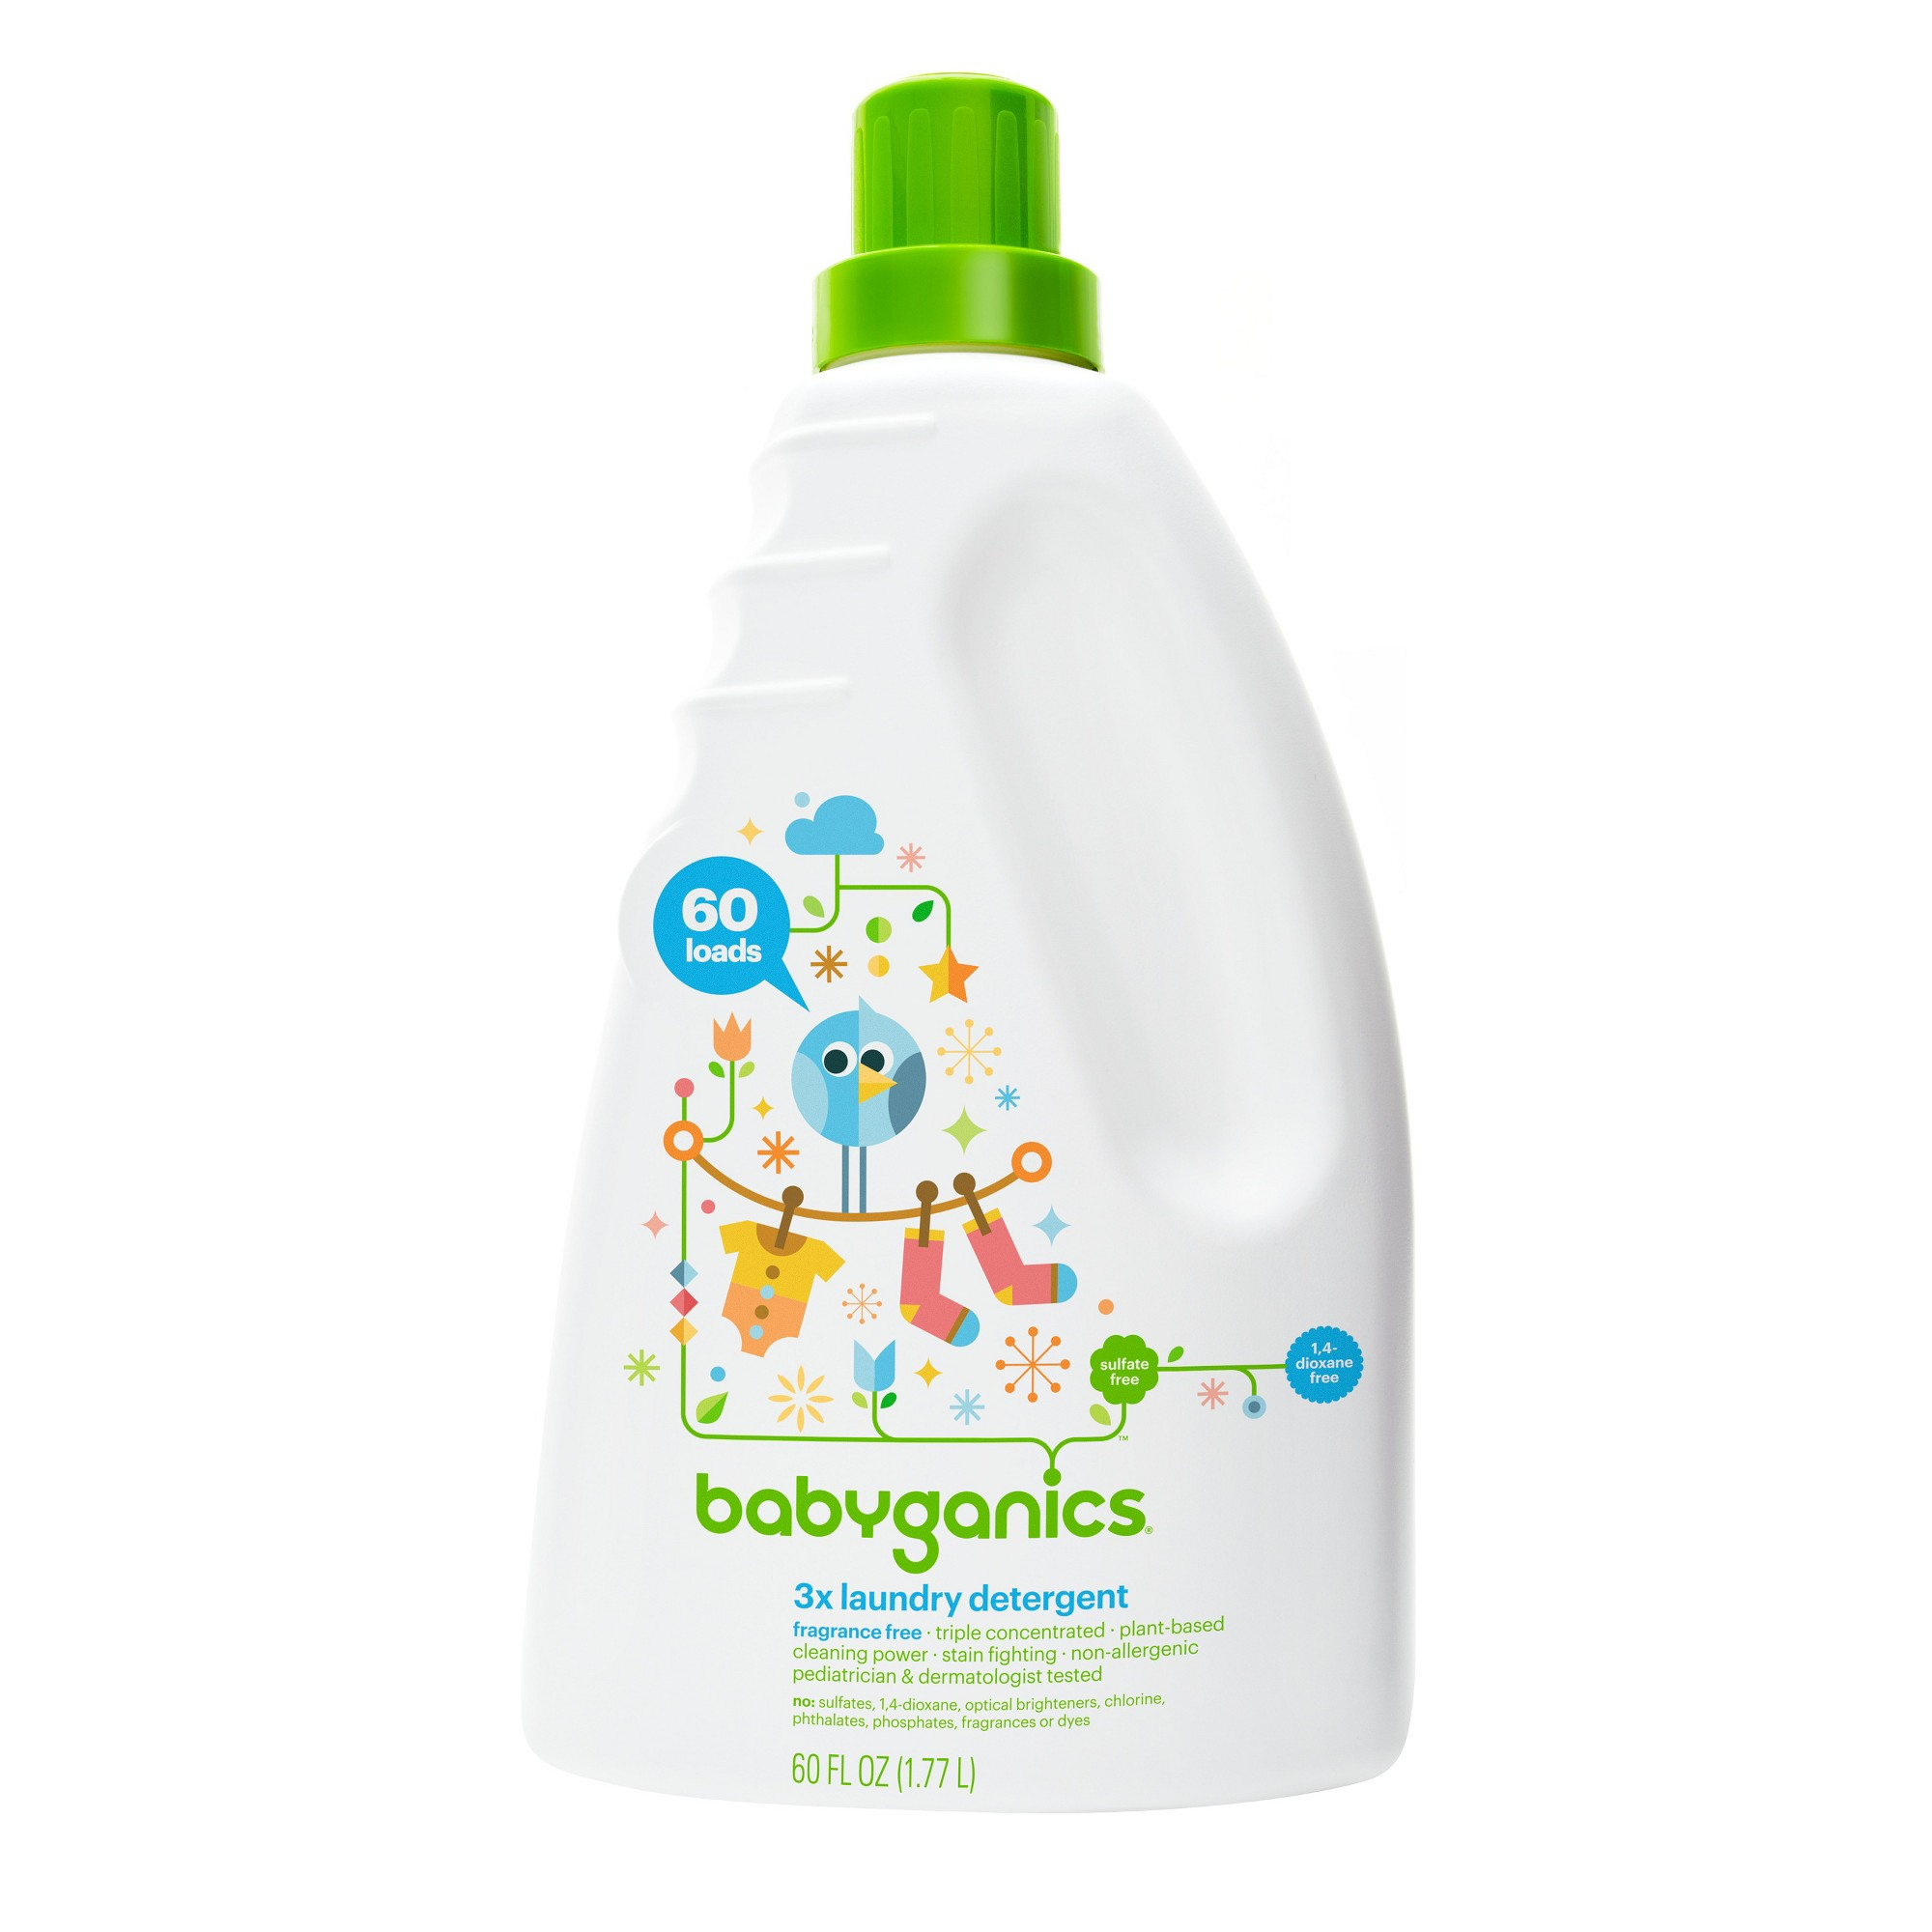 Babyganics 3x Laundry Detergent Fragrance Free 60oz With